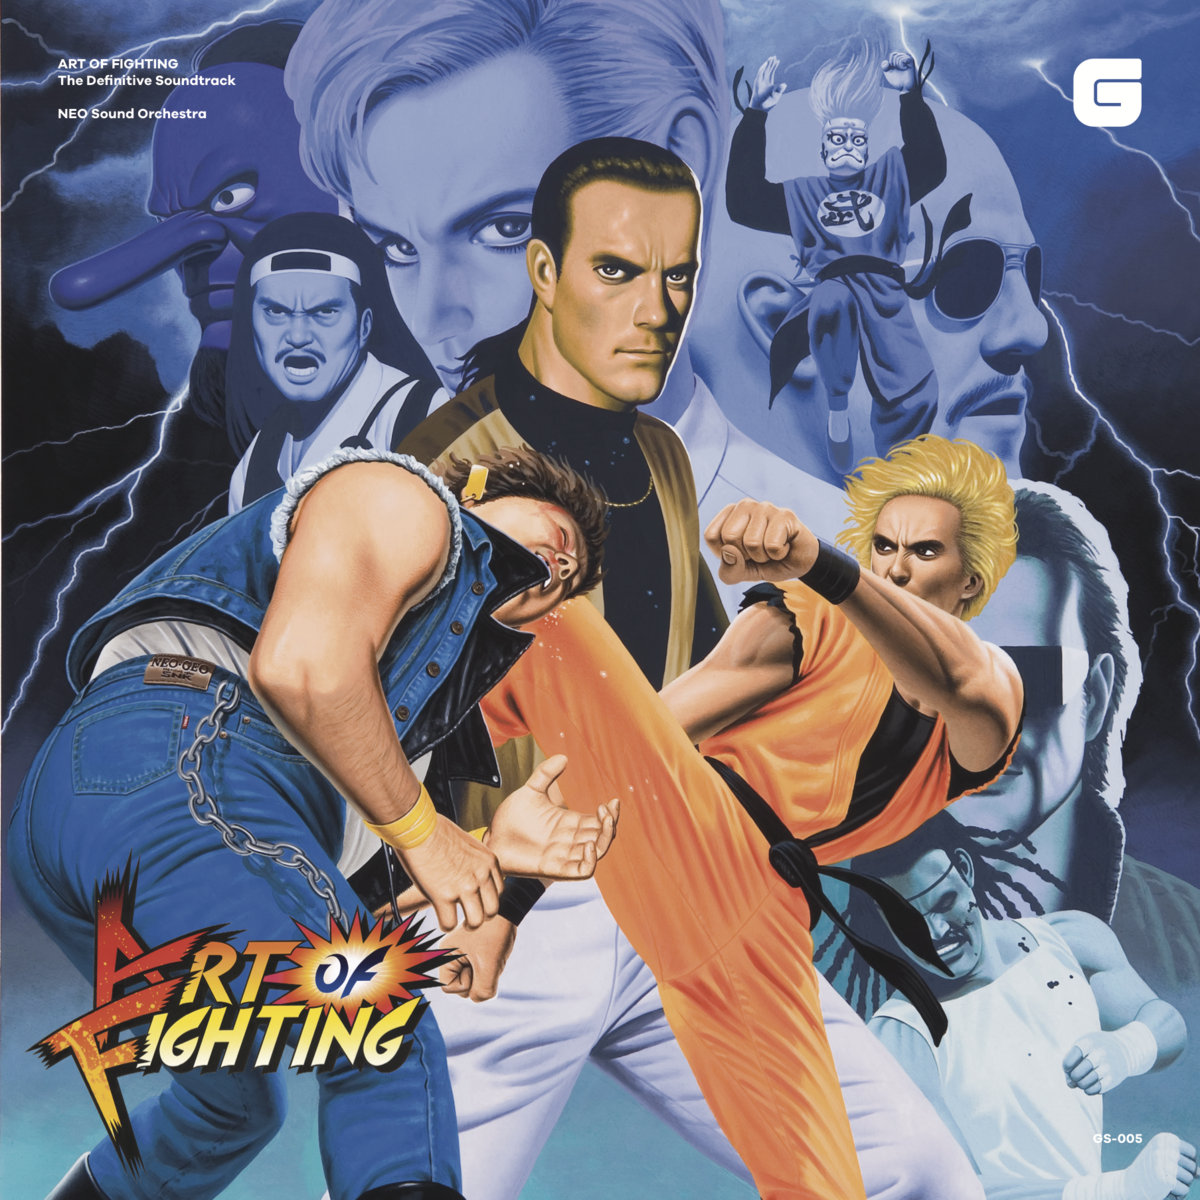 ART OF FIGHTING The Definitive Soundtrack CD: $13